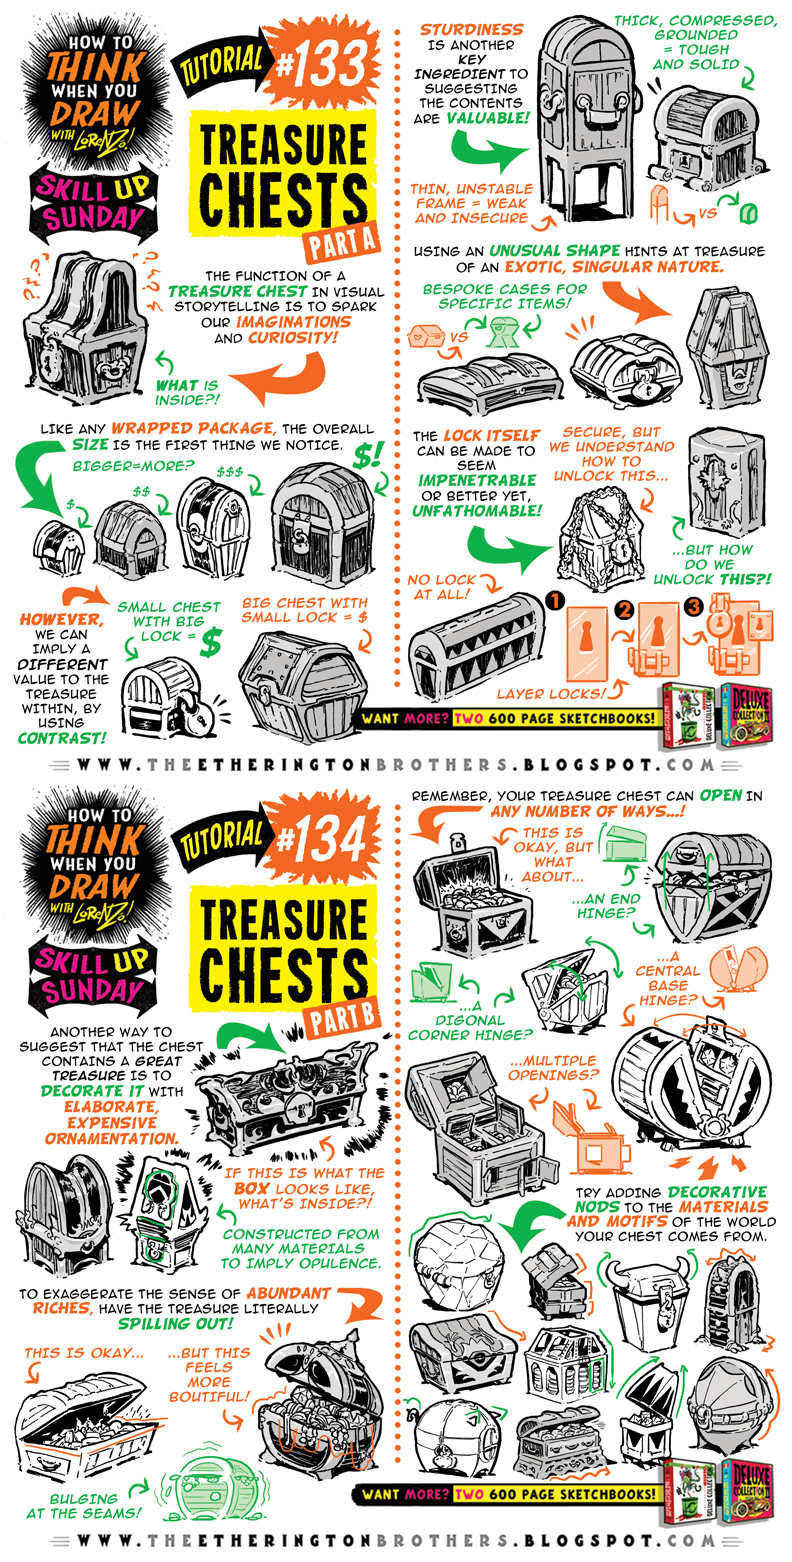 How to draw TREASURE CHESTS tutorial by STUDIOBLINKTWICE